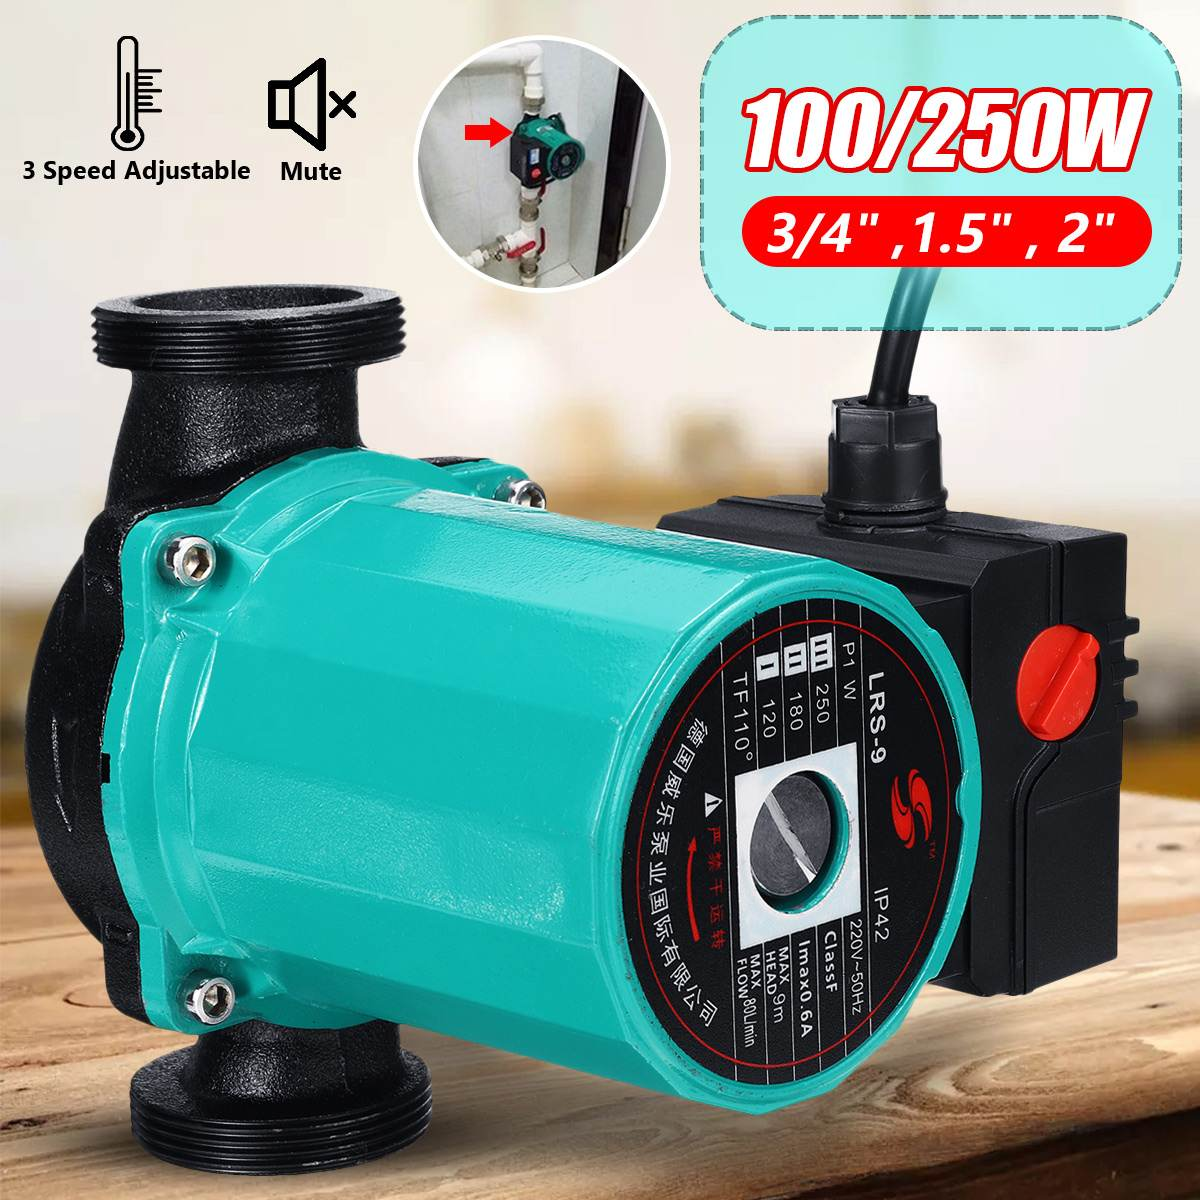 3-Speed 220V Central Heating Circulator Mute Boiler Hot Water Circulating Pump F Class Insulation IP42 Protection Cast Iron